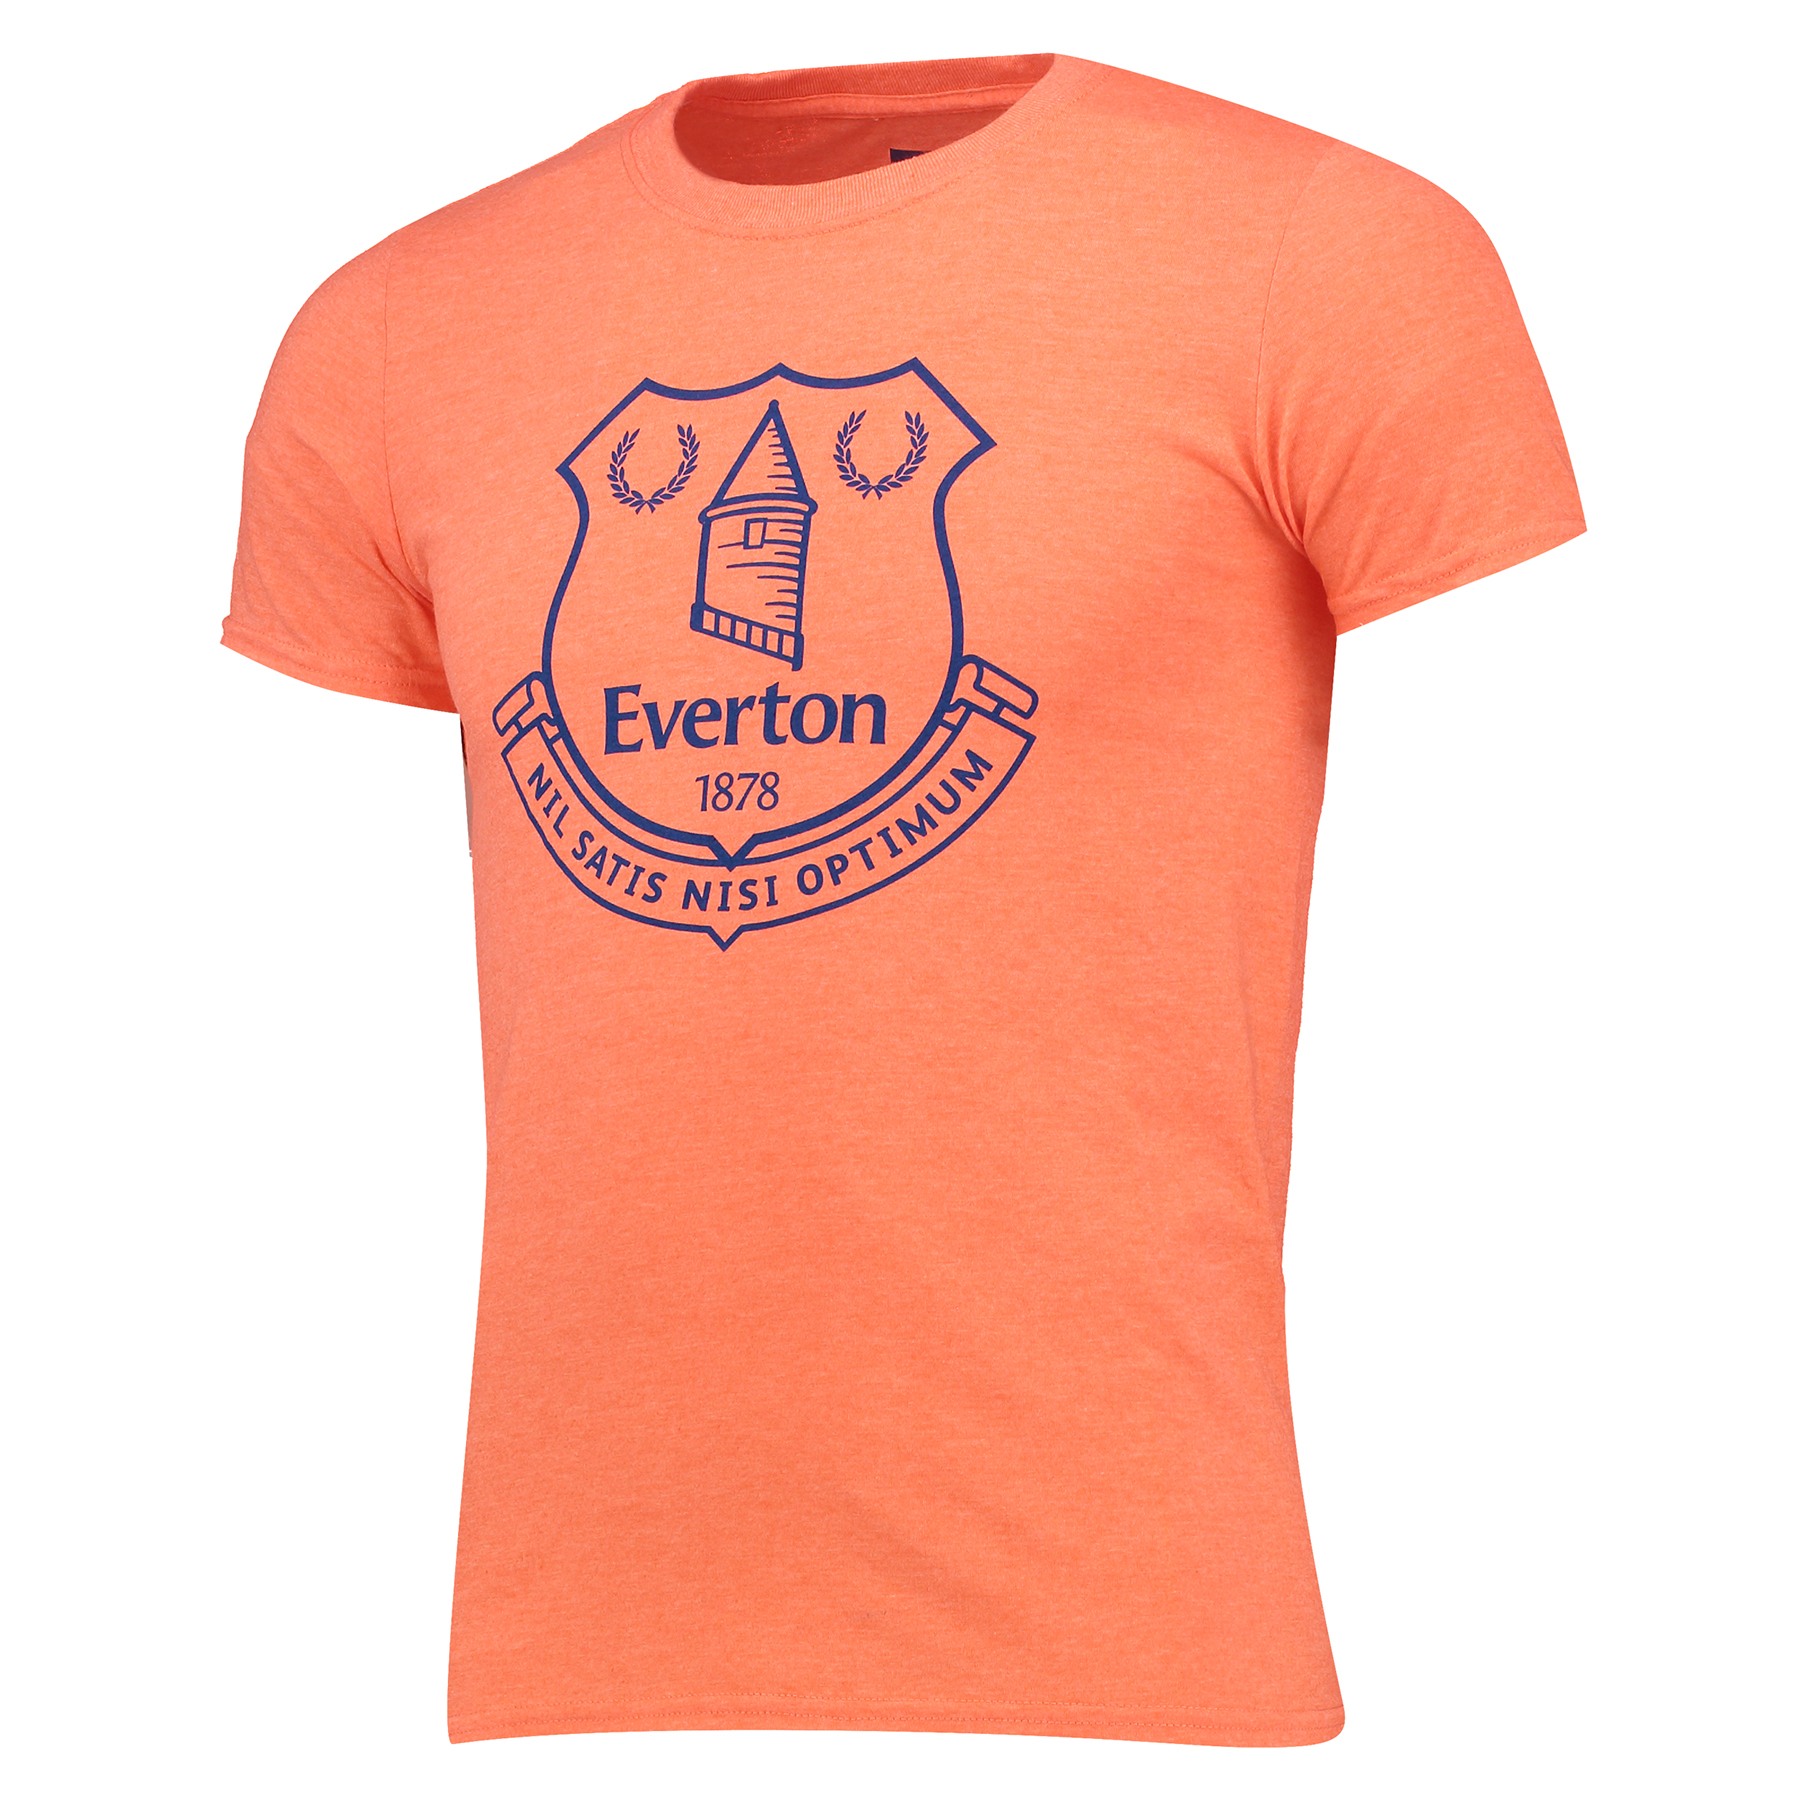 Everton Everton 2for20 Crest T-Shirt - Orange - Mens